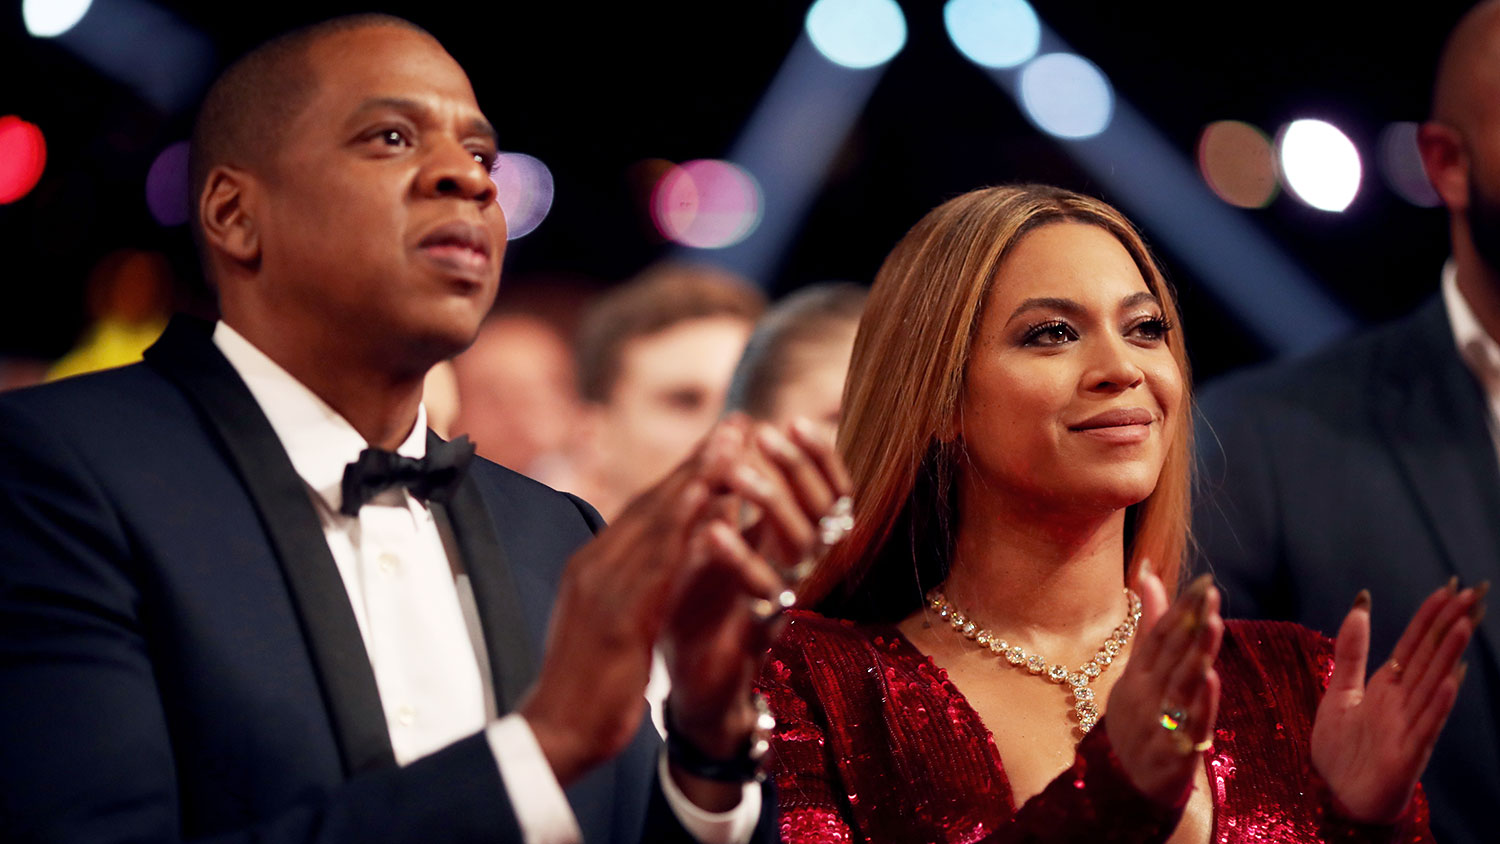 Beyoncé and Jay Z Fans Will Fall Drunk in Love with This Themed Restaurant